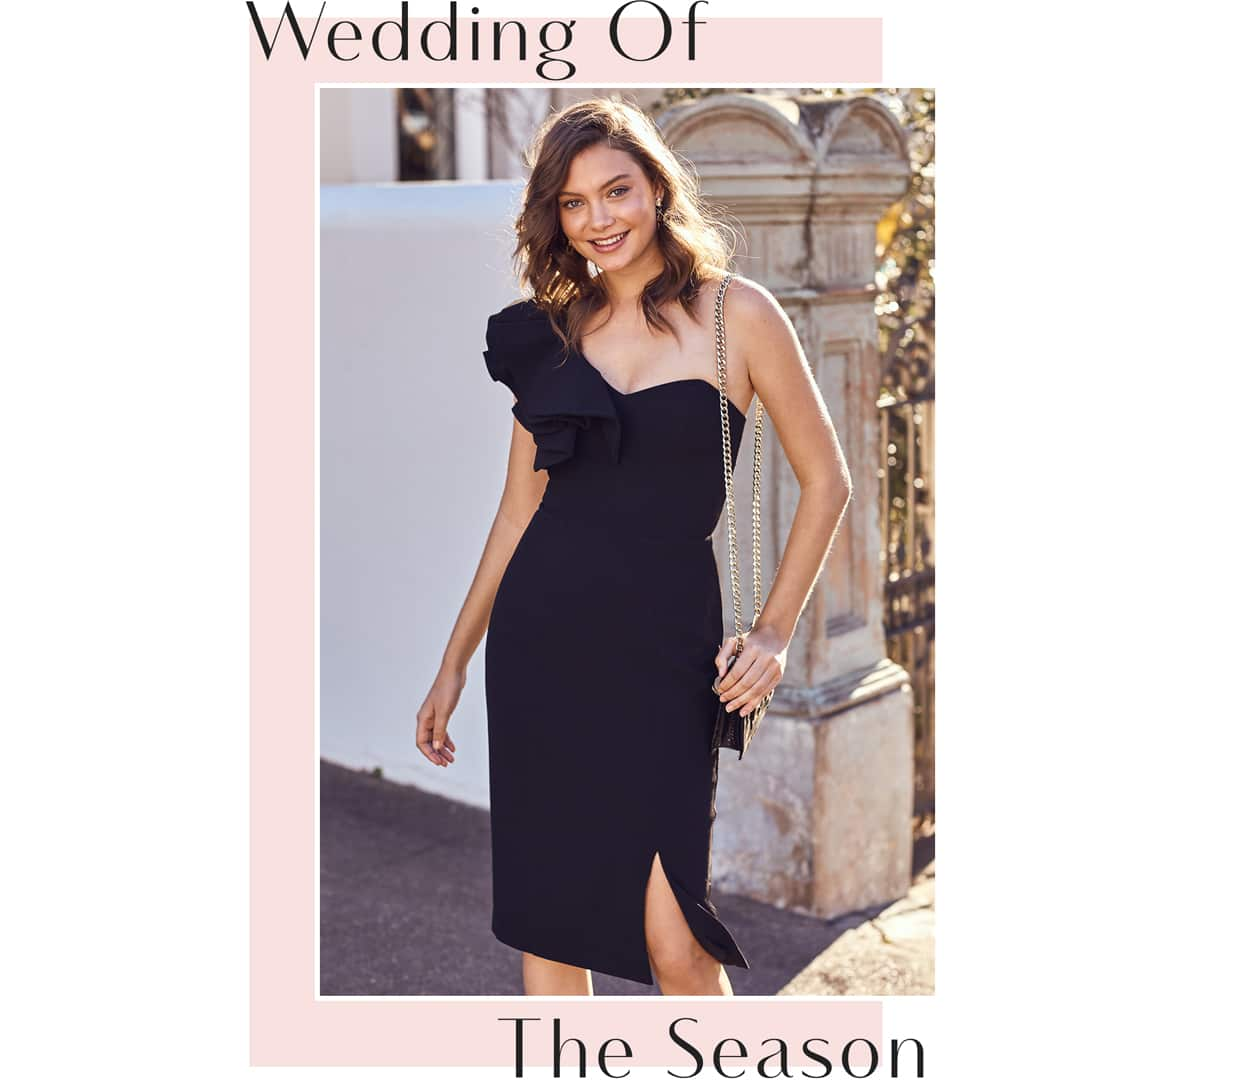 Wedding Of The Season